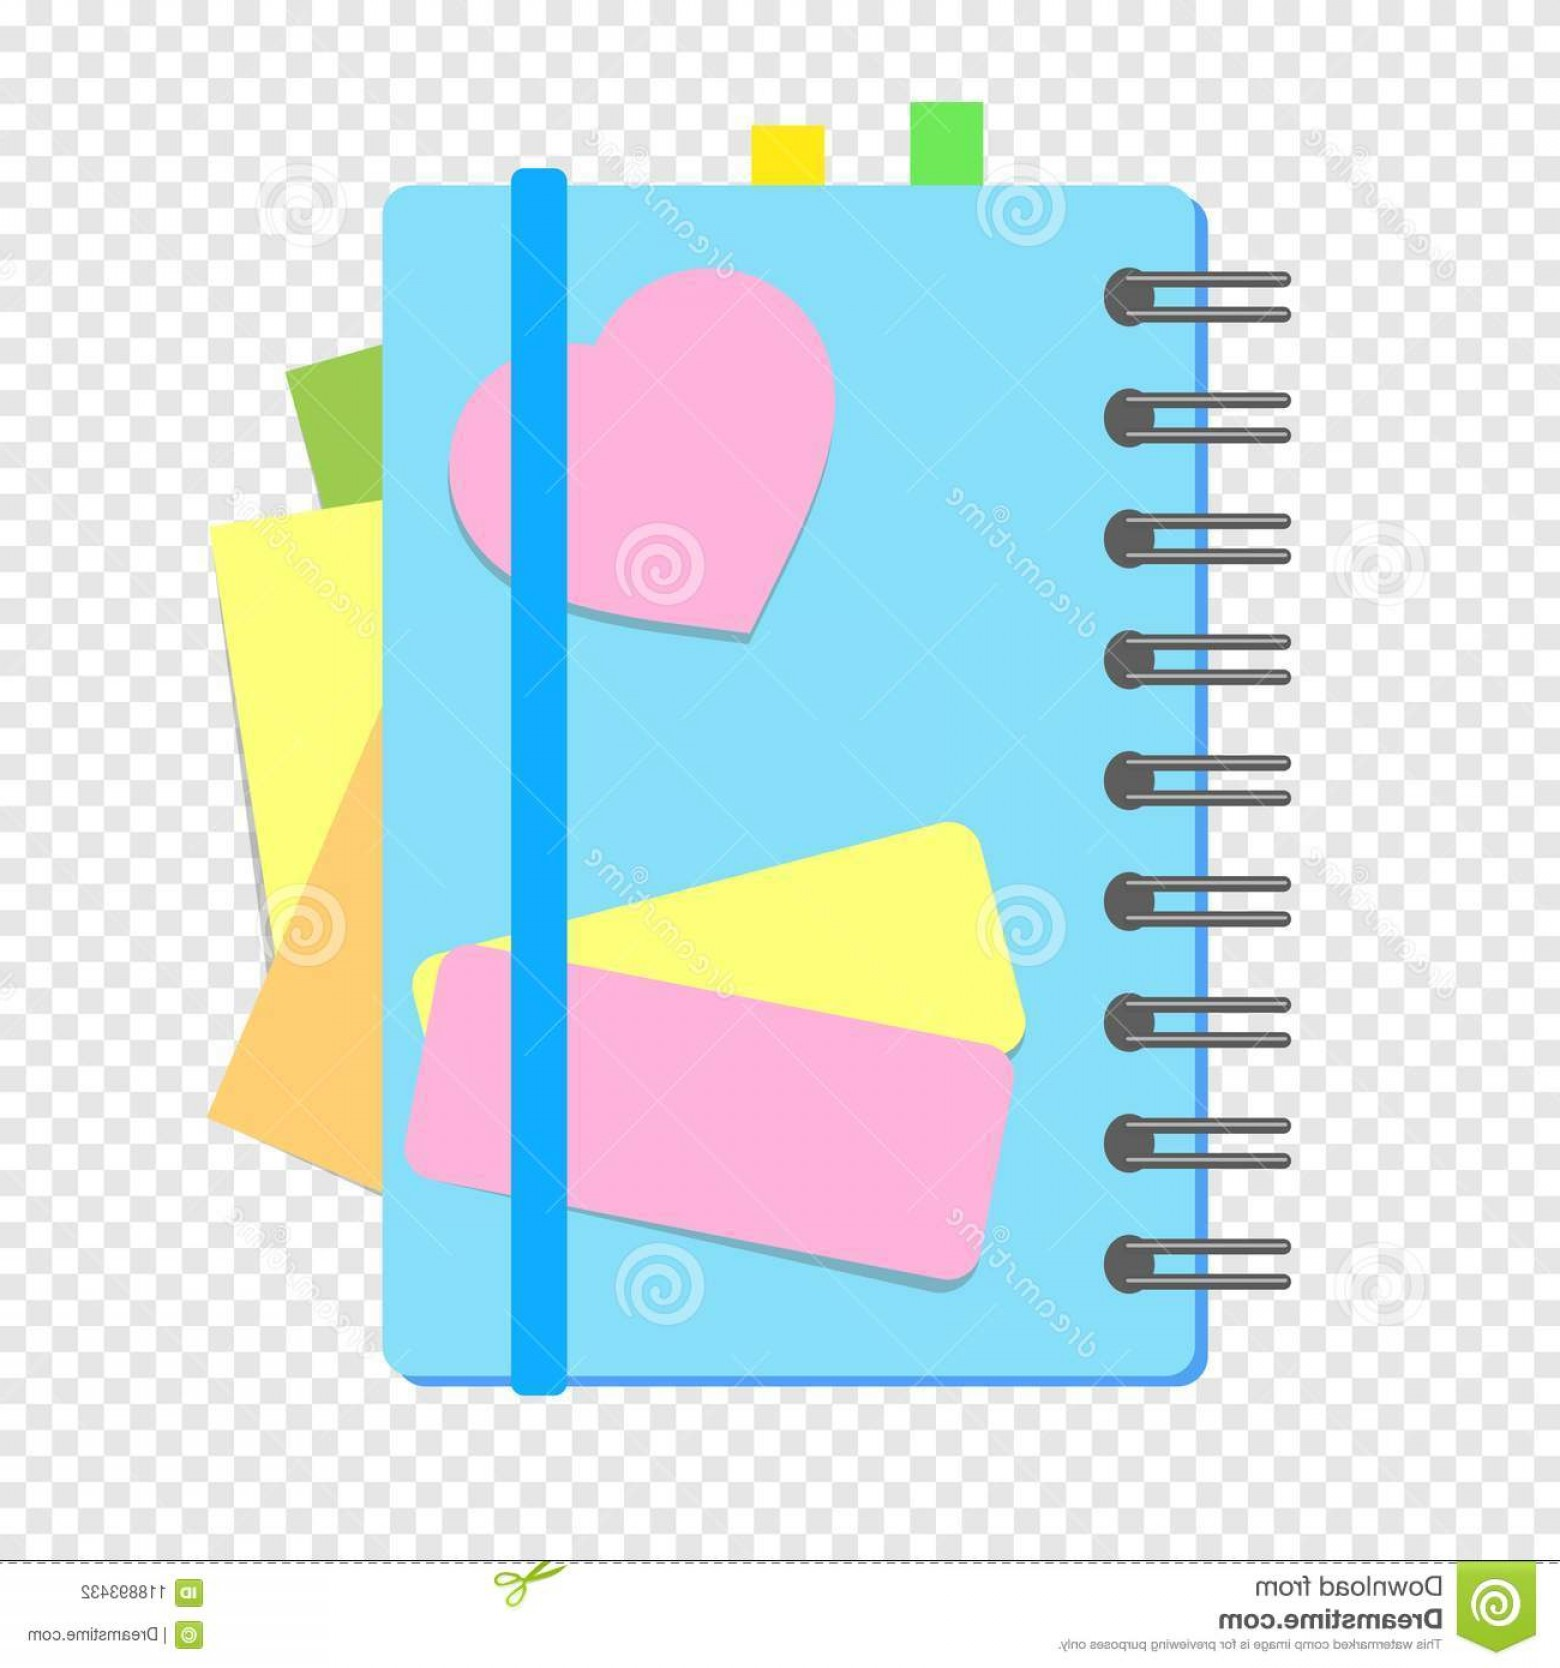 Subtracting Vectors BA: Colored Closed Notebook Spring Bookmarks Pages Simple Flat Vector Illustration Isolated Transparent Ba Image